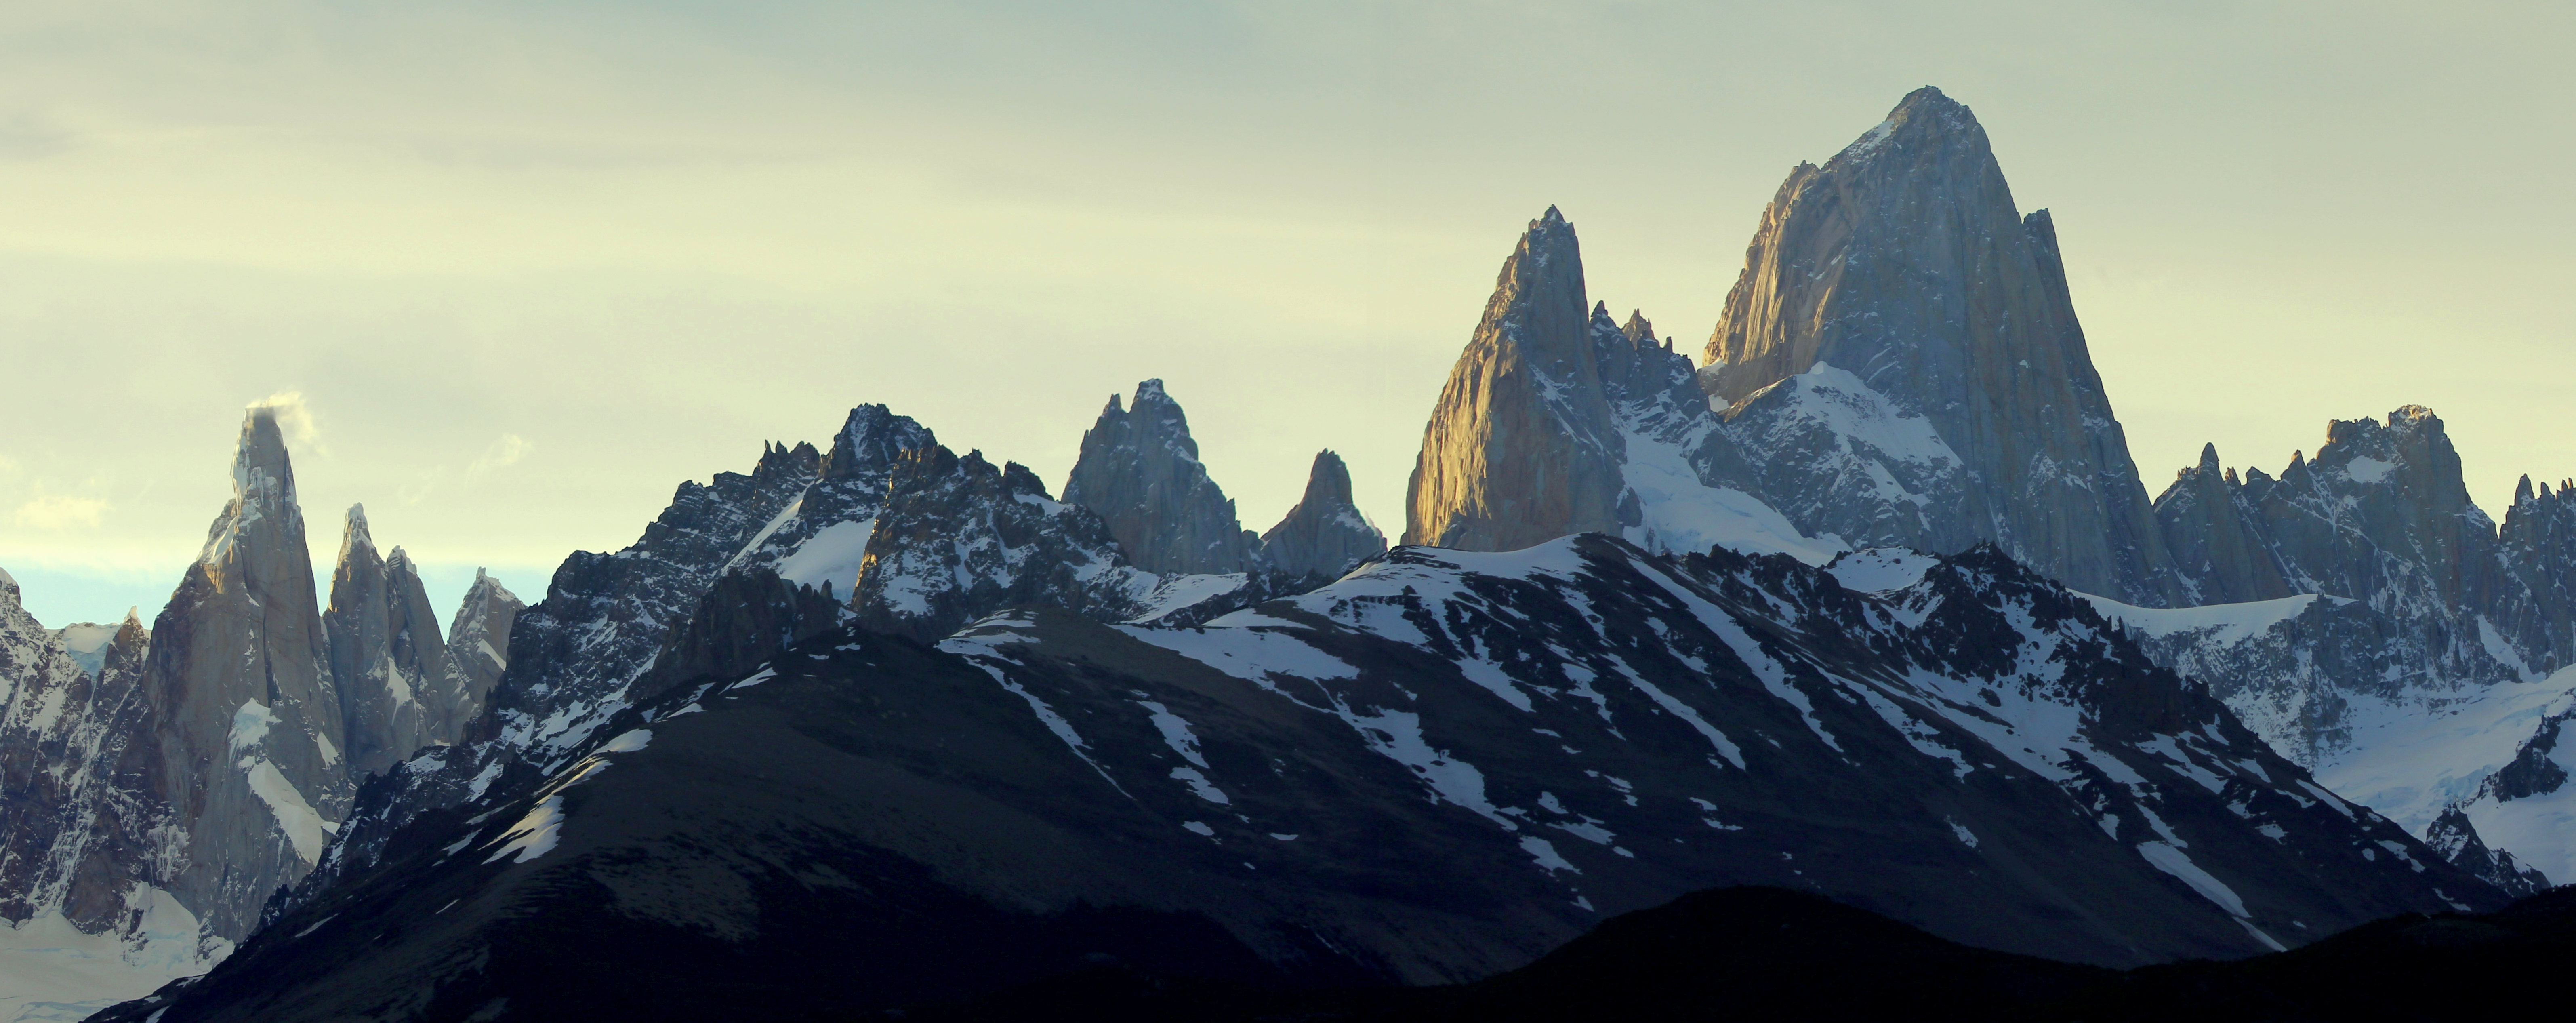 A panorama showing the last rays of the day striking the distinctive peaks of the Fitz Roy sector of Parque Nacional Los Glaciares in southern Patagonia, Argentina. November 3, 2015.